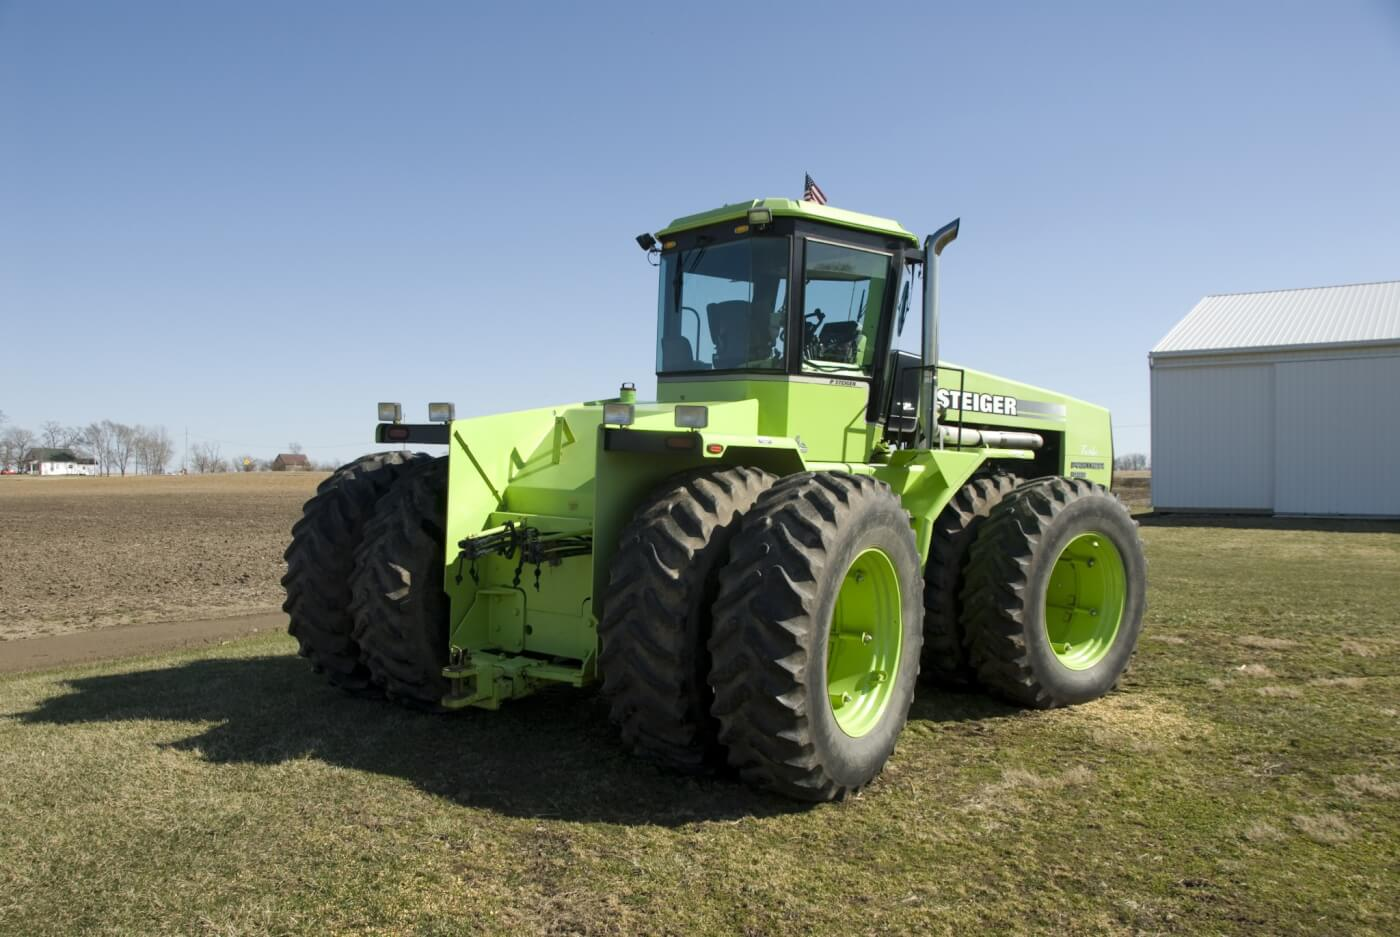 The Panther had an optional PTO and a 3-point lift, but they aren't common—Daron's doesn't have either, just a huge drawbar and four pairs of remotes. Four radial 20.8R-38 tires put the power to the ground. The original tires size was listed as 23.1-34 non radials.